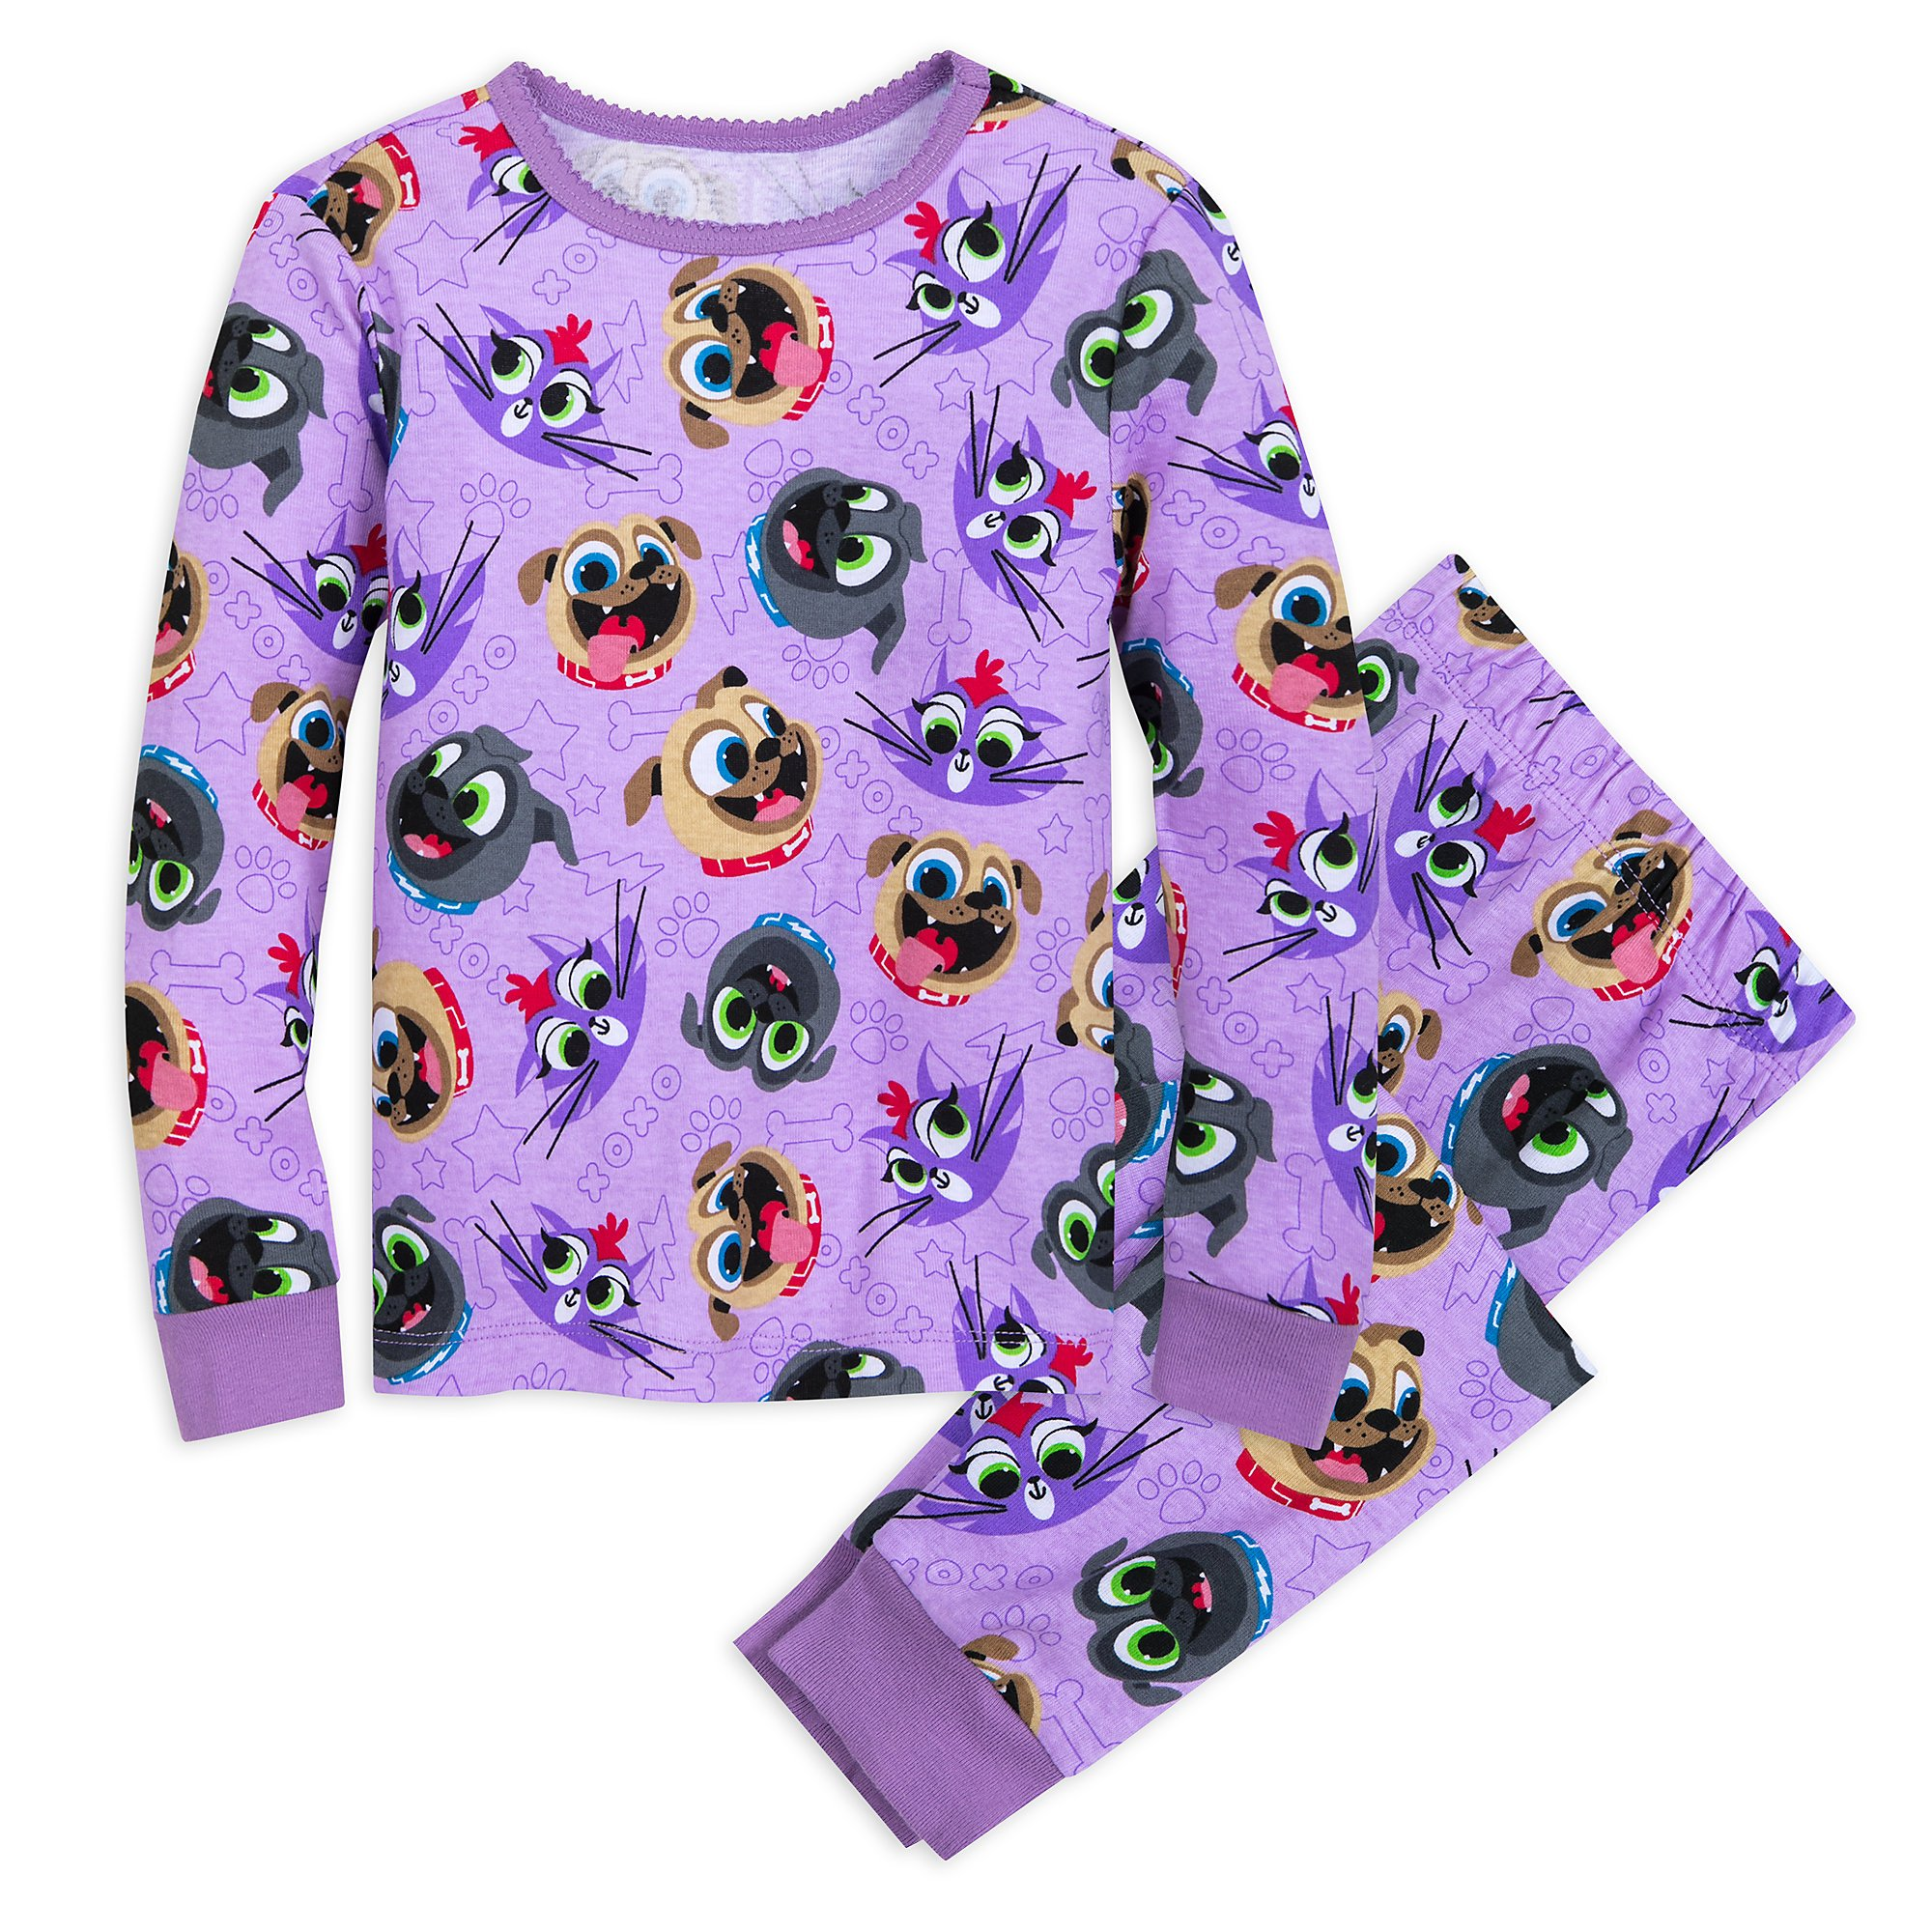 Disney Puppy Dog Pals PJ PALS for Girls Size 2 Multi